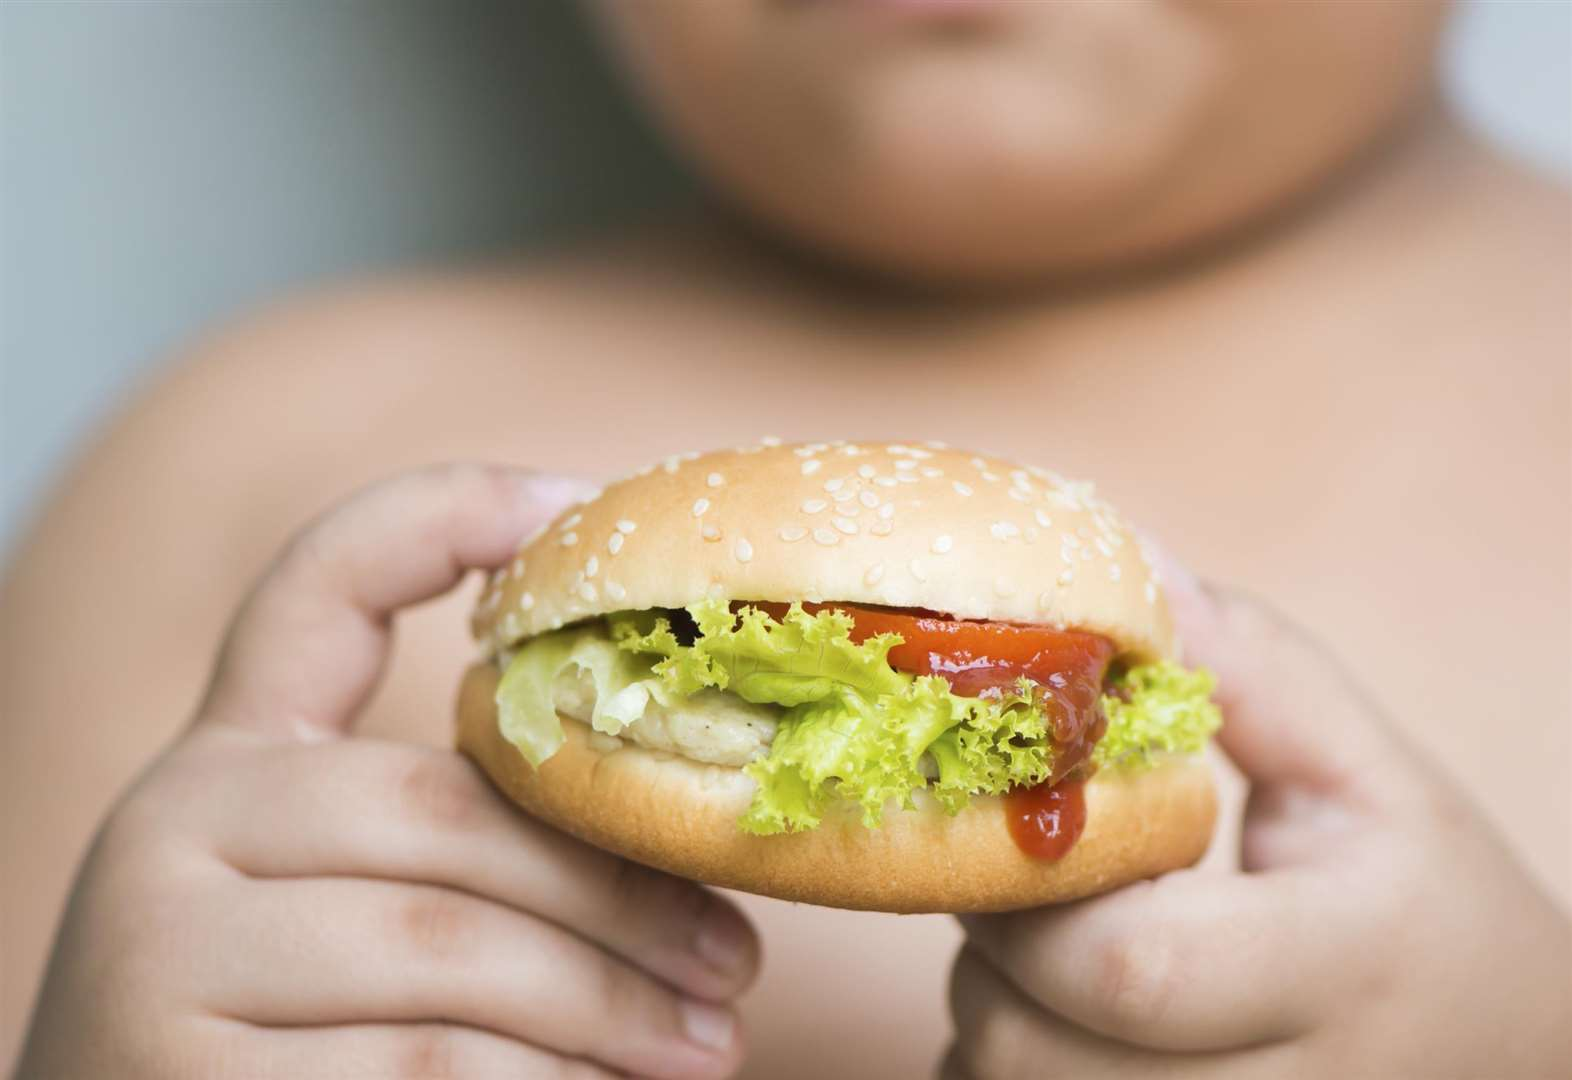 The latest figures show 4% of Year Six children are severely obese in Kent